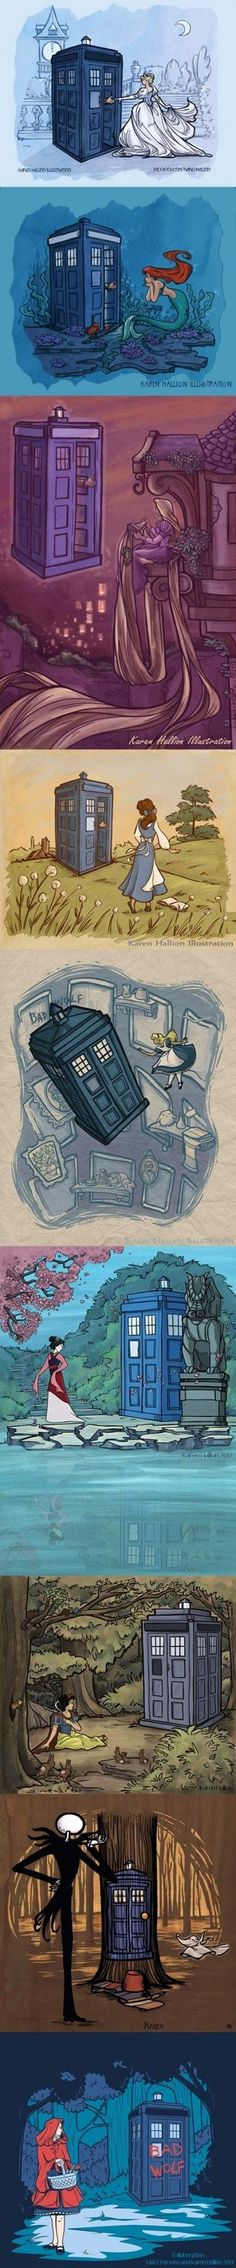 Doctor Who gets around...using Disney Princesses as his new companions | Very nice mash here. | Follow here http://pinterest.com/cakespinyoface/geekery/ for even more Geekery-- art, tech and more!